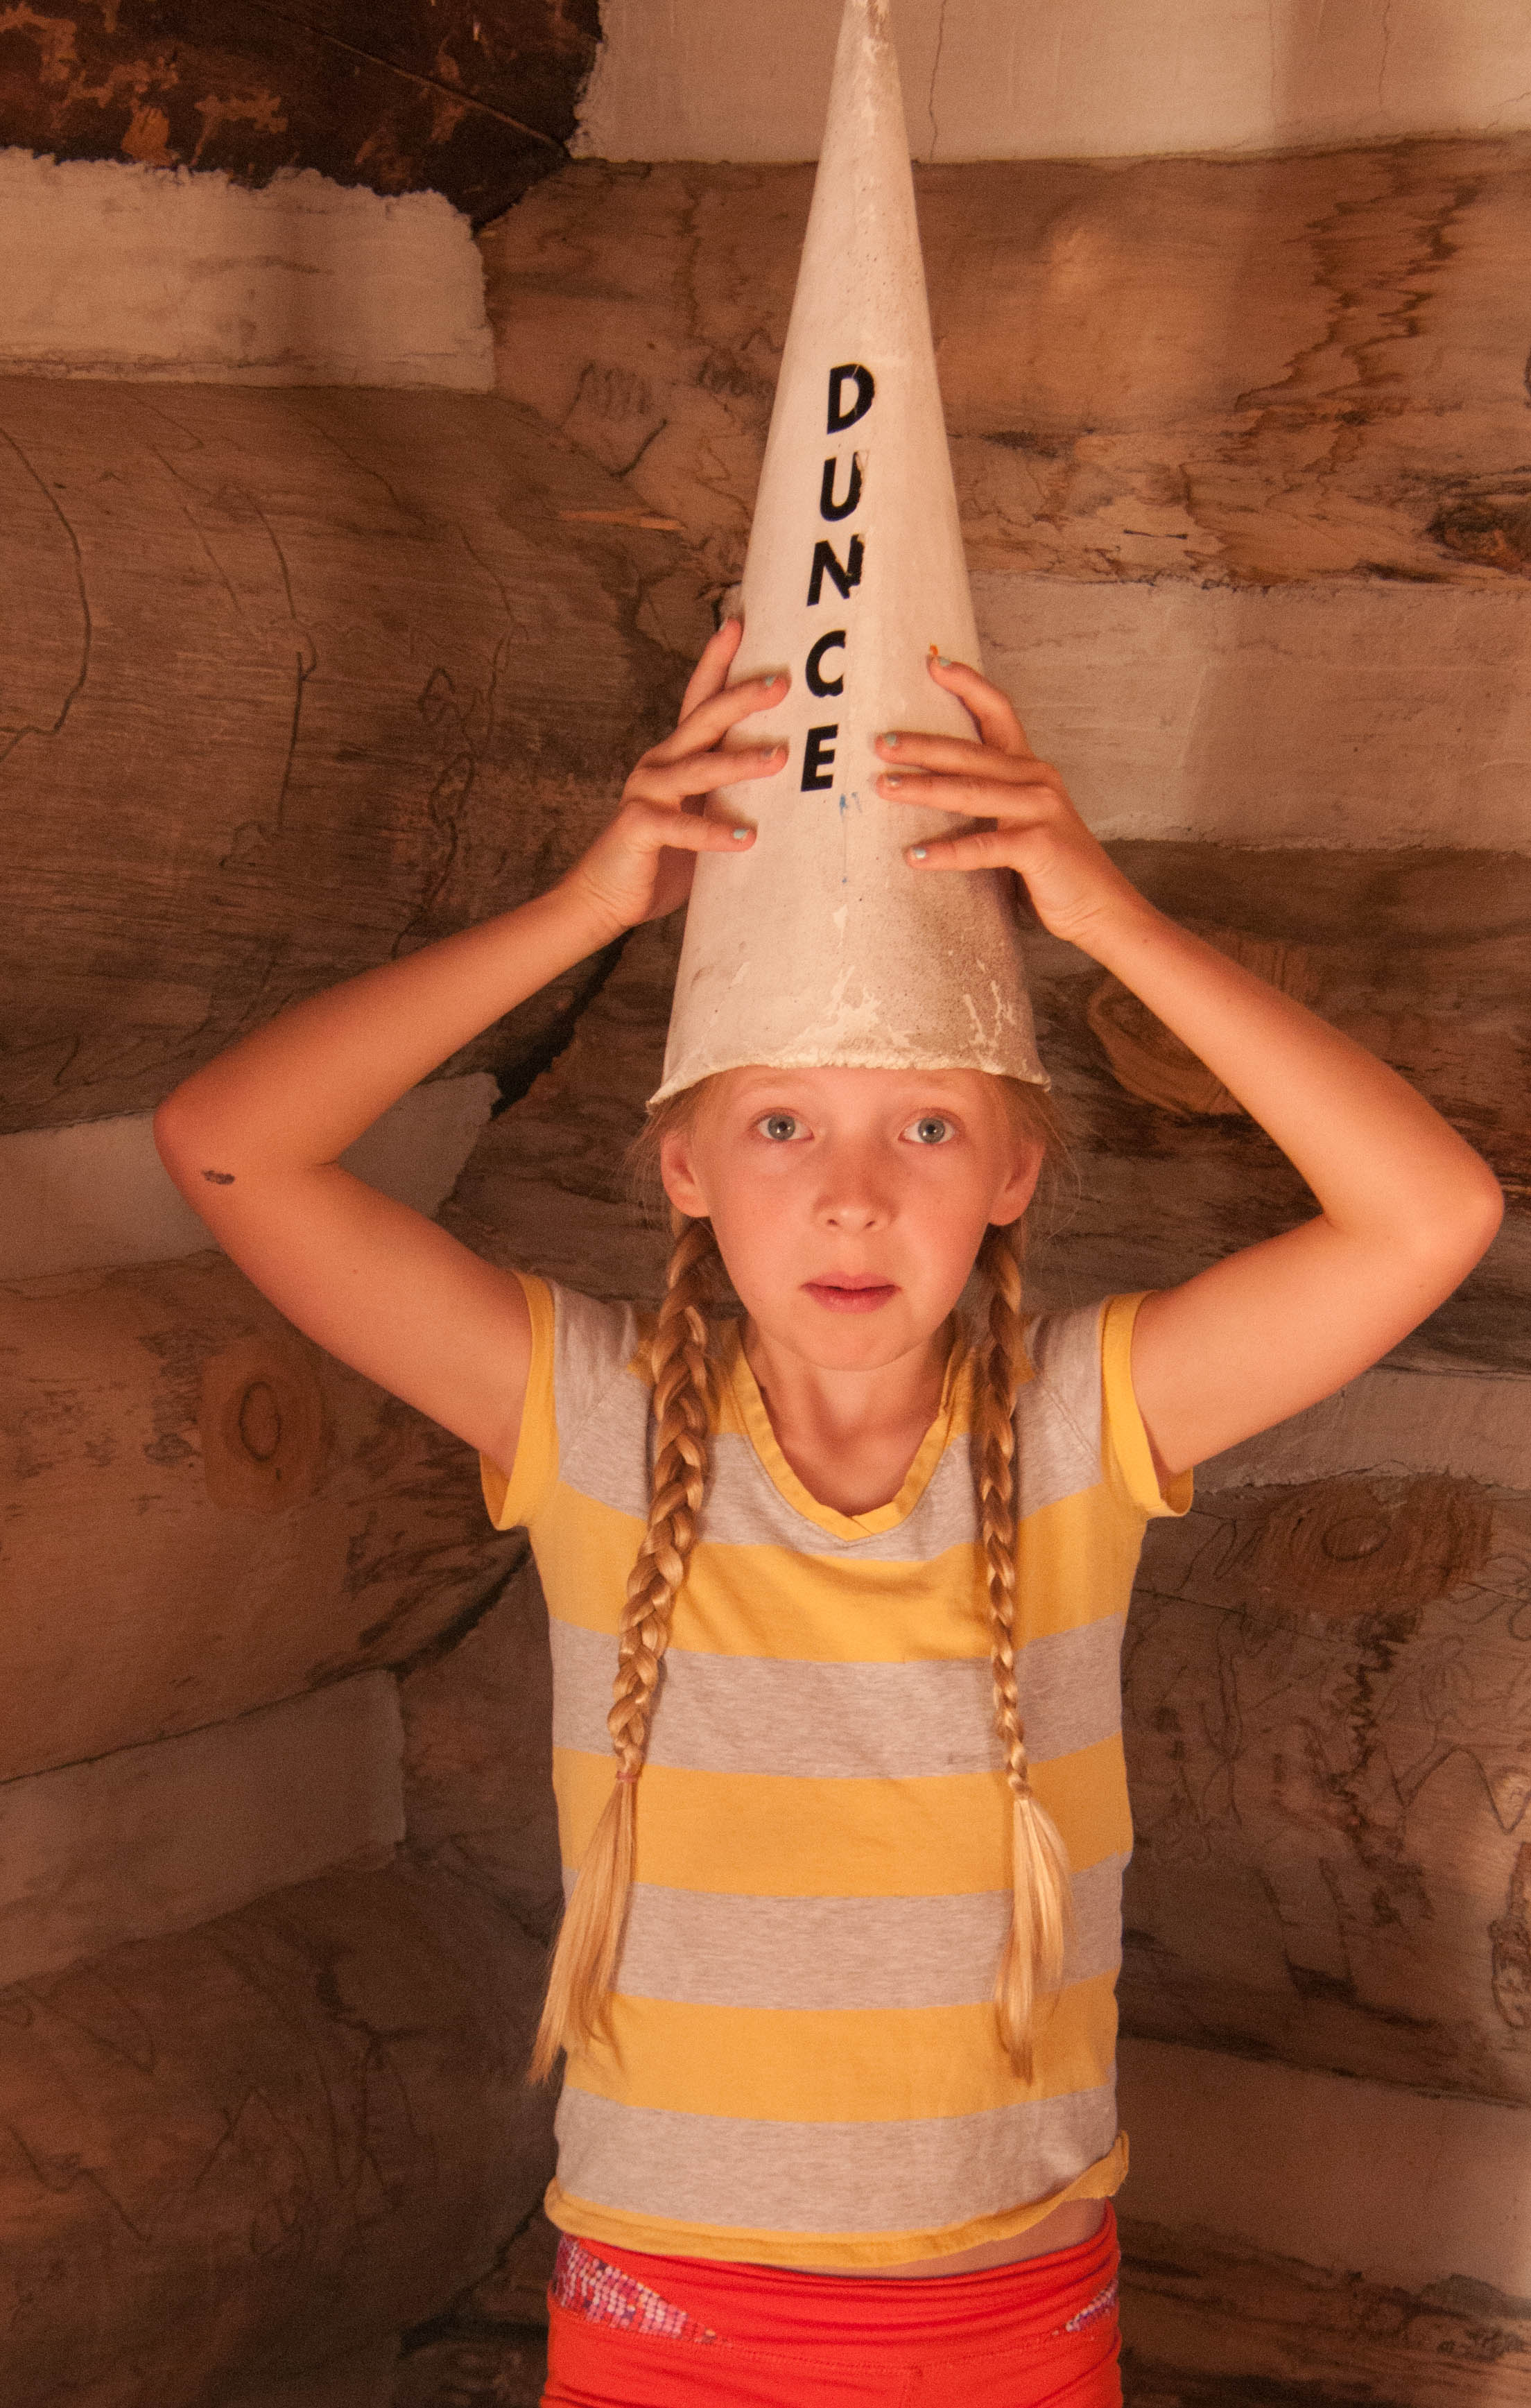 Visitor Lillie Brown acts the part of a dunce, Frontier Homestead State Park Museum, Cedar City, Utah, August 2016 | Photo by Jim Lillywhite, St. George News